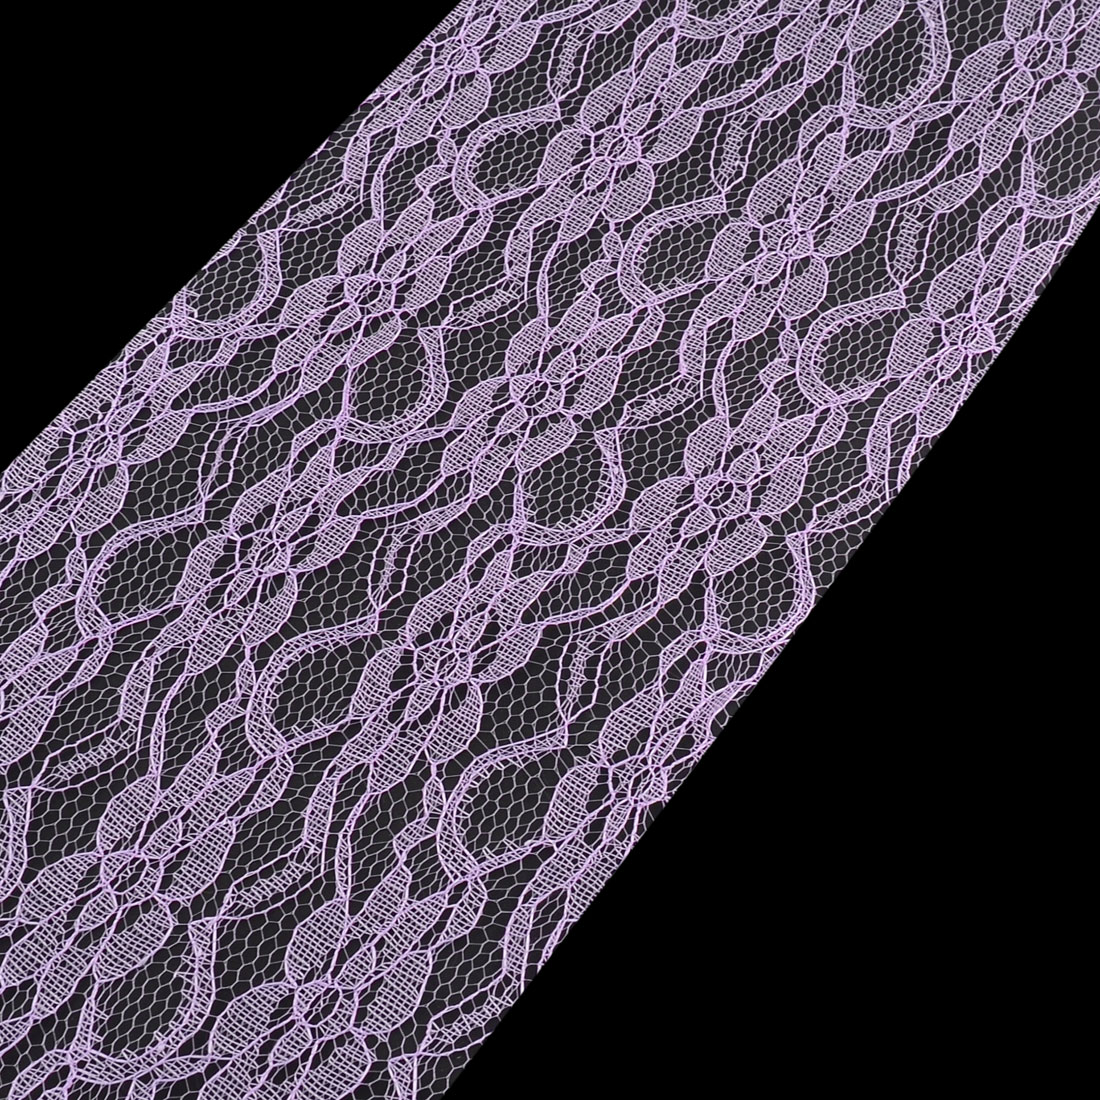 Party Lace Banquet Hall Decor Tulle Spool Roll Light Purple 6 Inch x 25 Yards - image 3 of 5